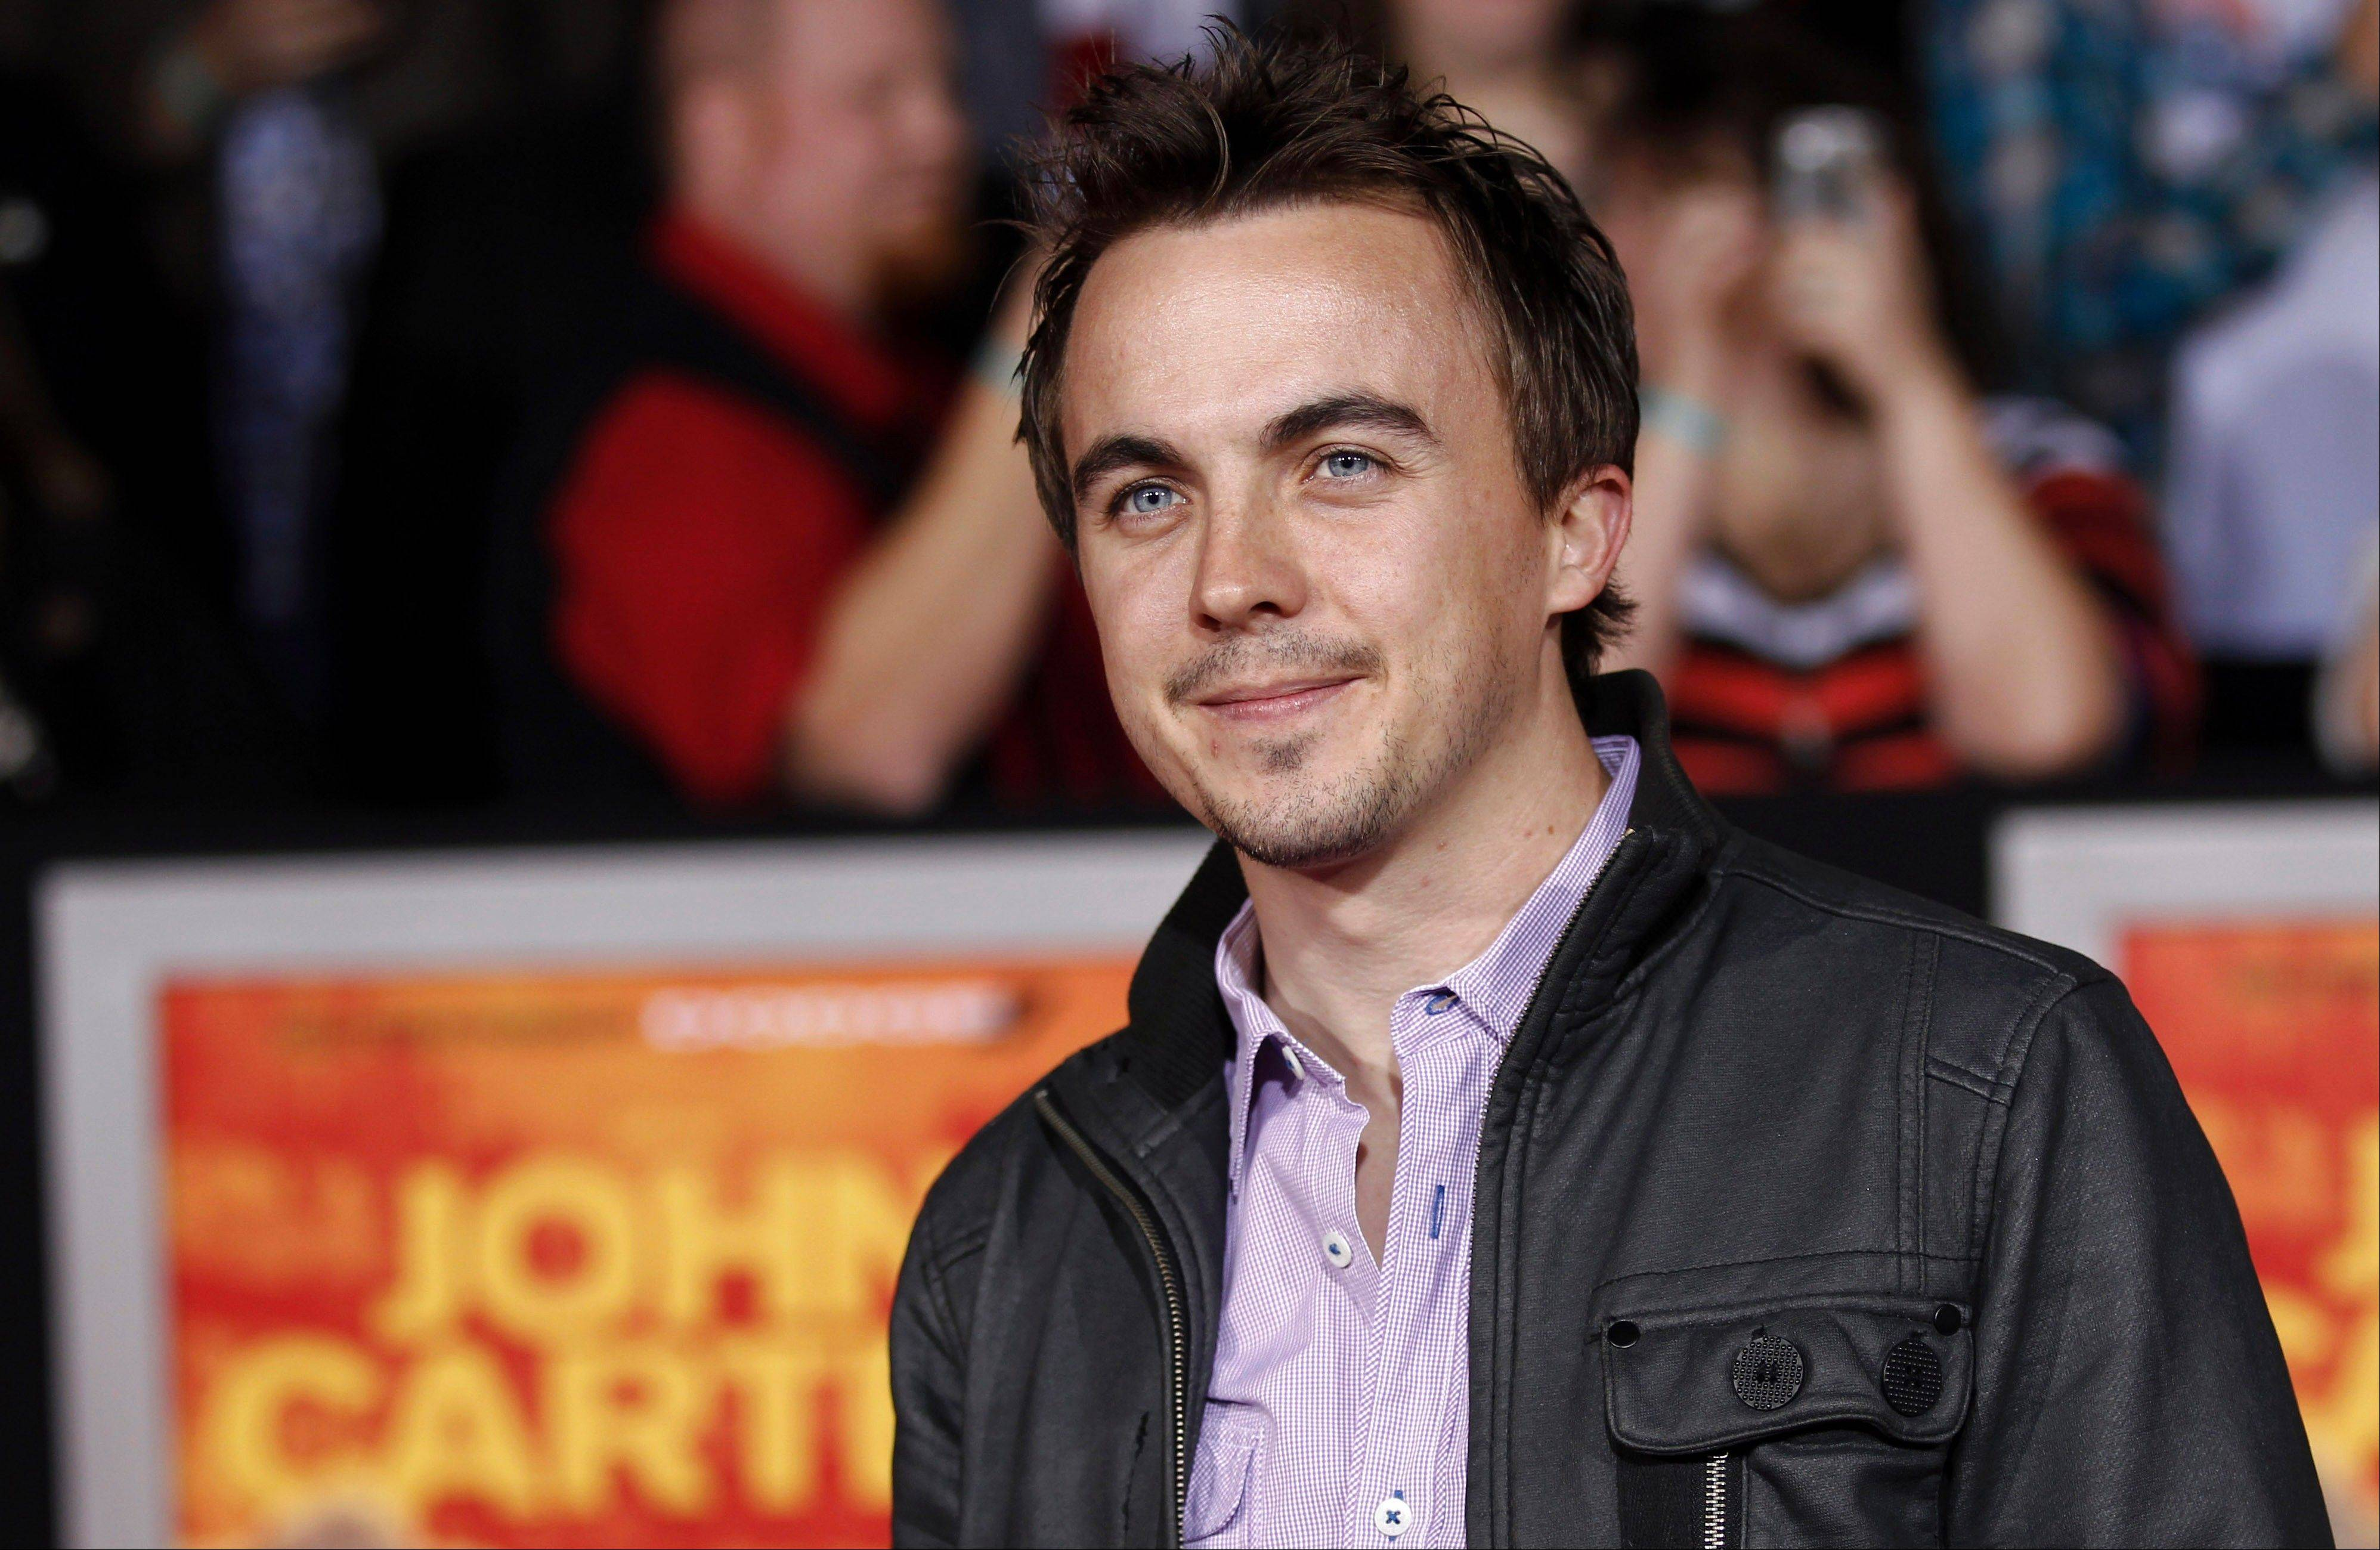 Frankie Muniz says he was hospitalized last week after suffering a �mini stroke.�